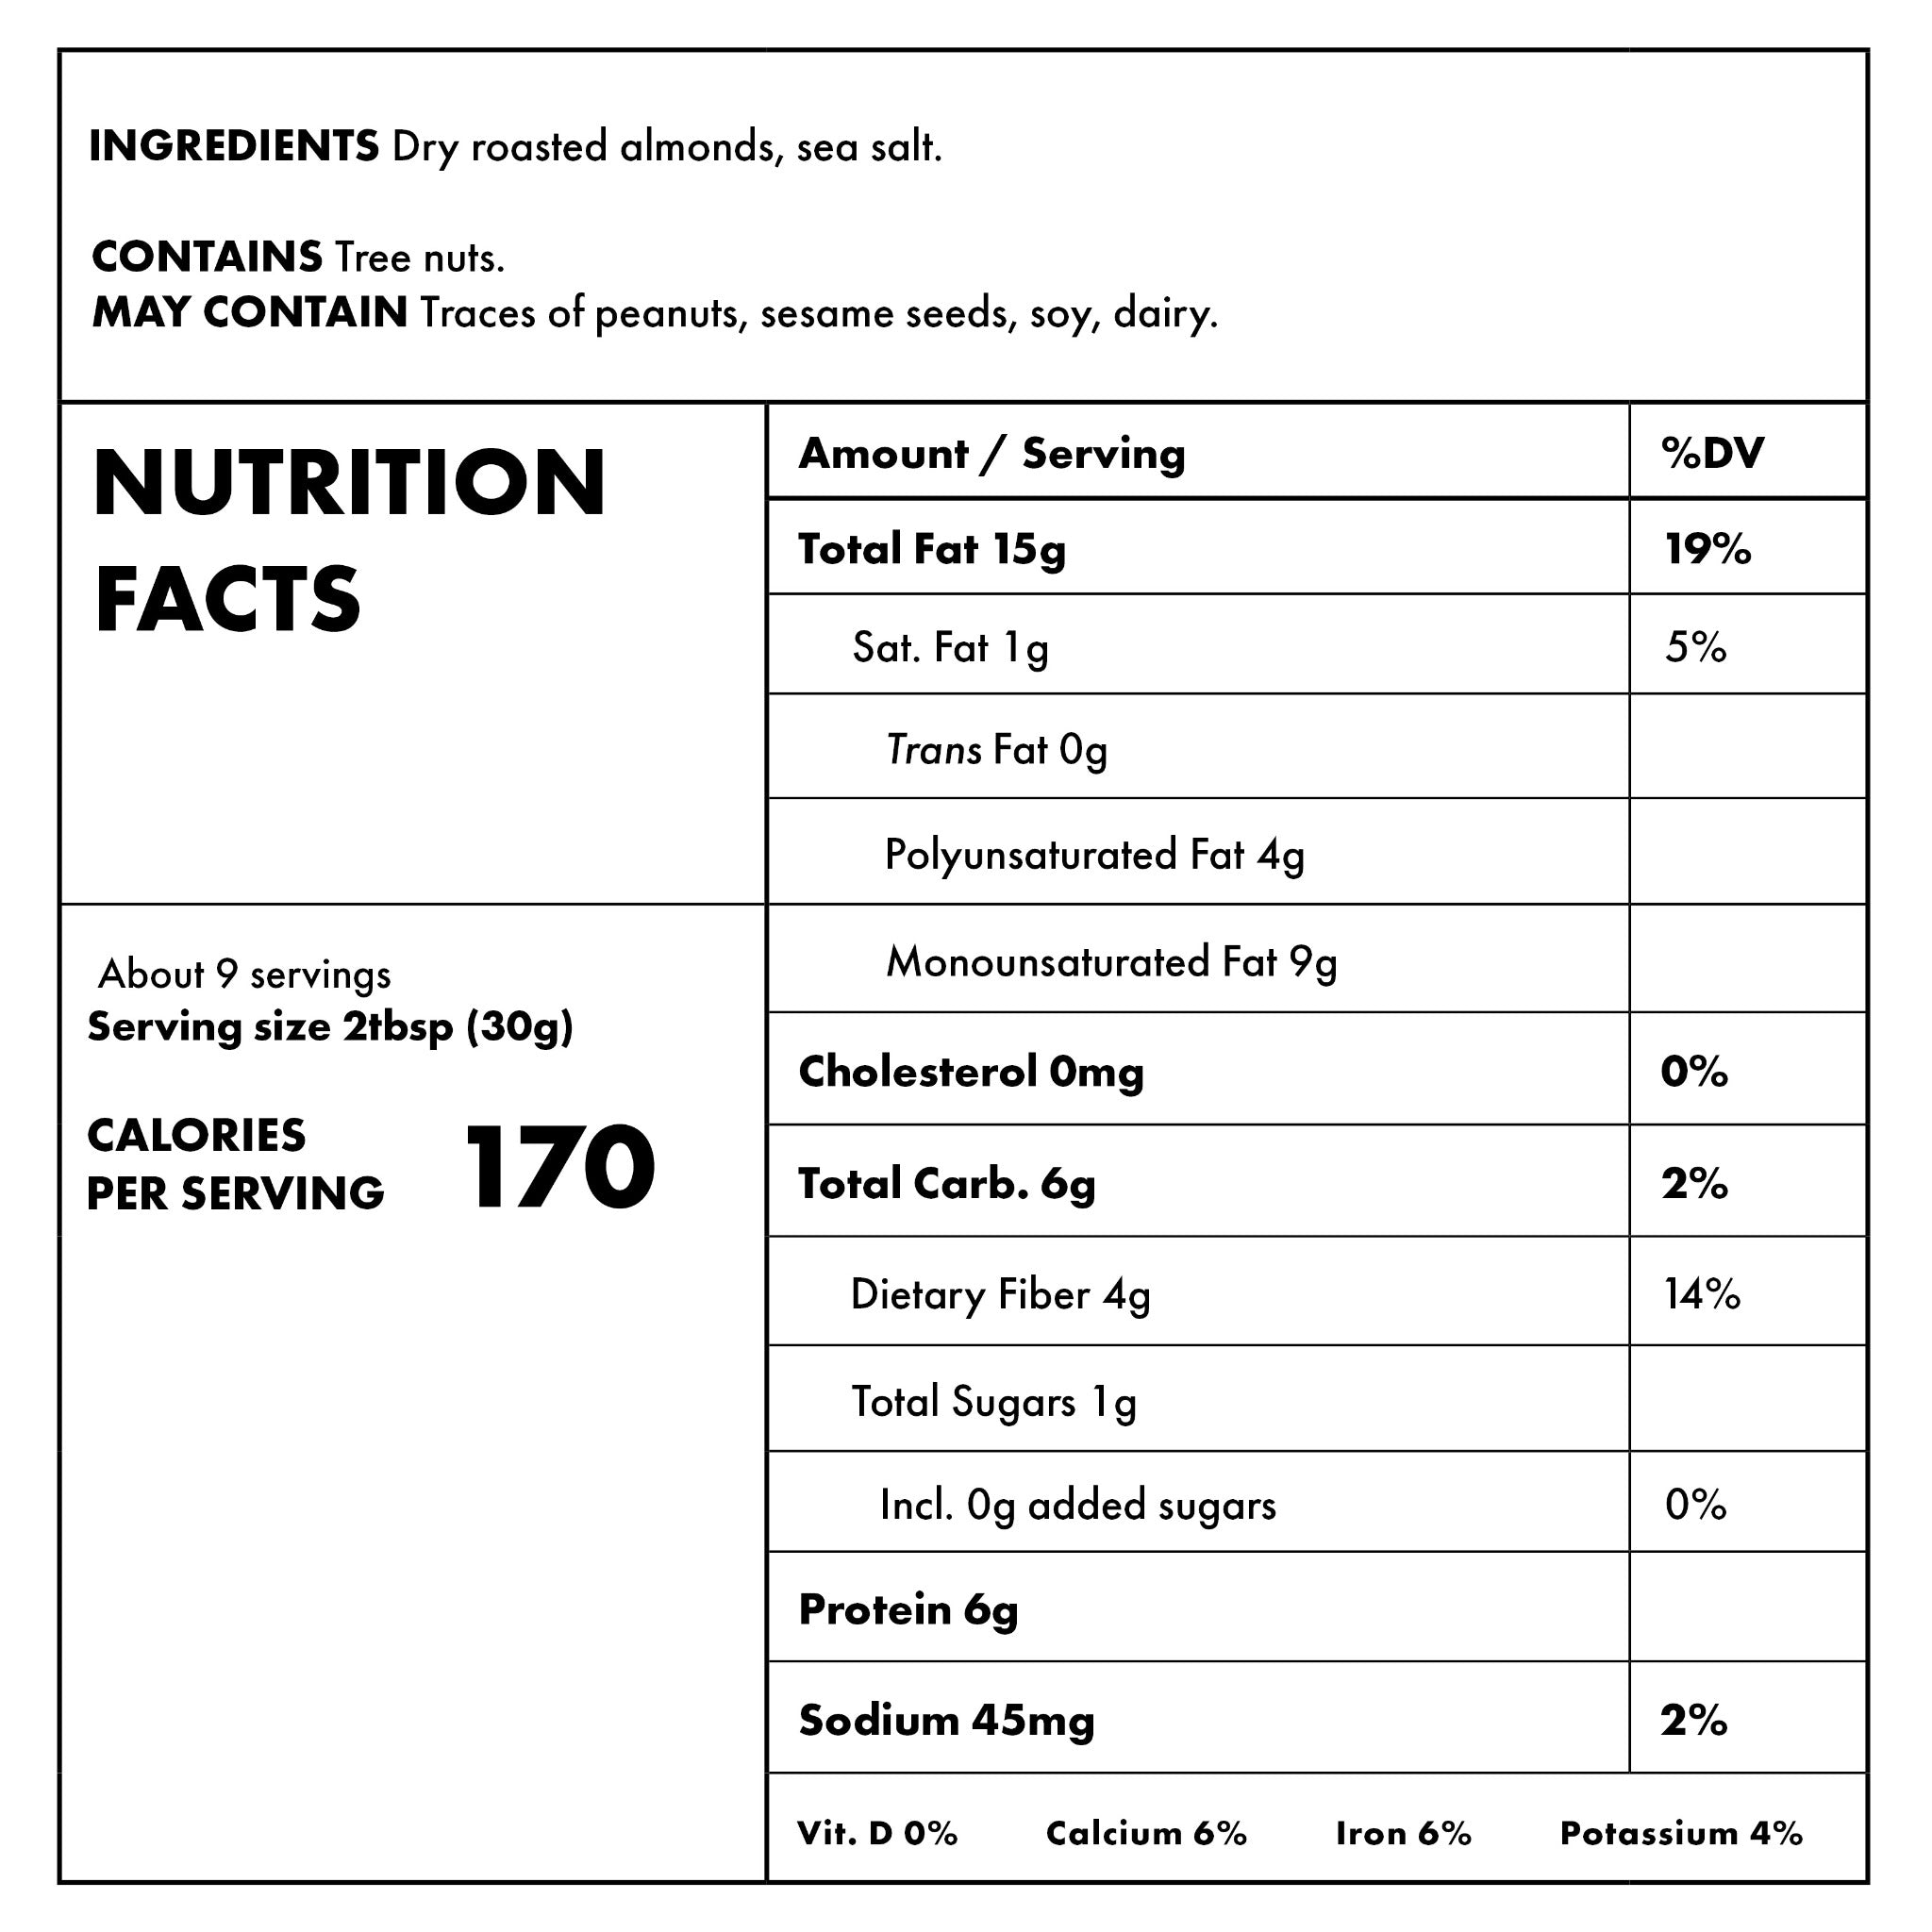 Crunchy Almond Nutritional Information